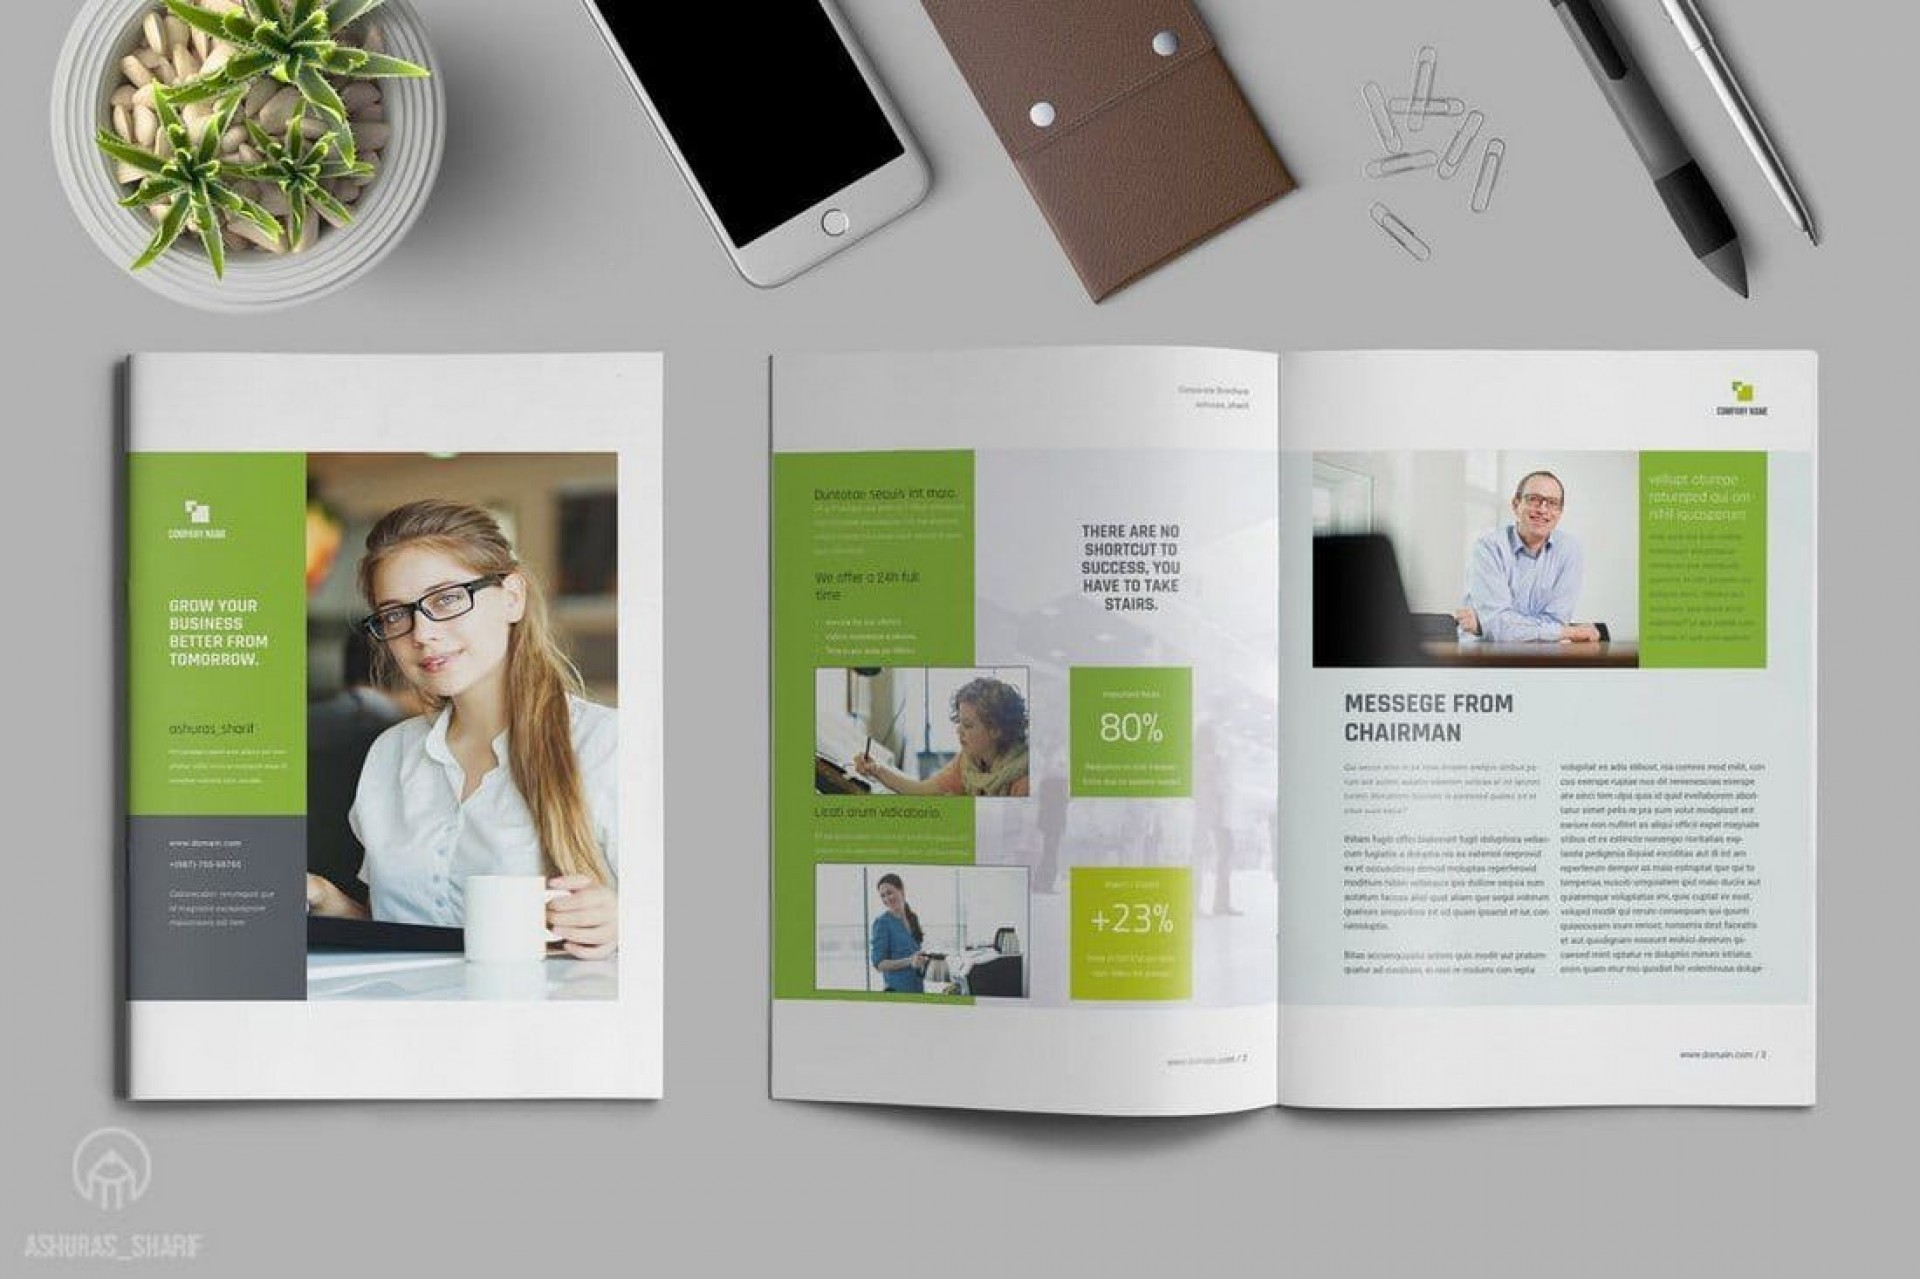 004 Phenomenal Free Adobe Indesign Annual Report Template Example 1920